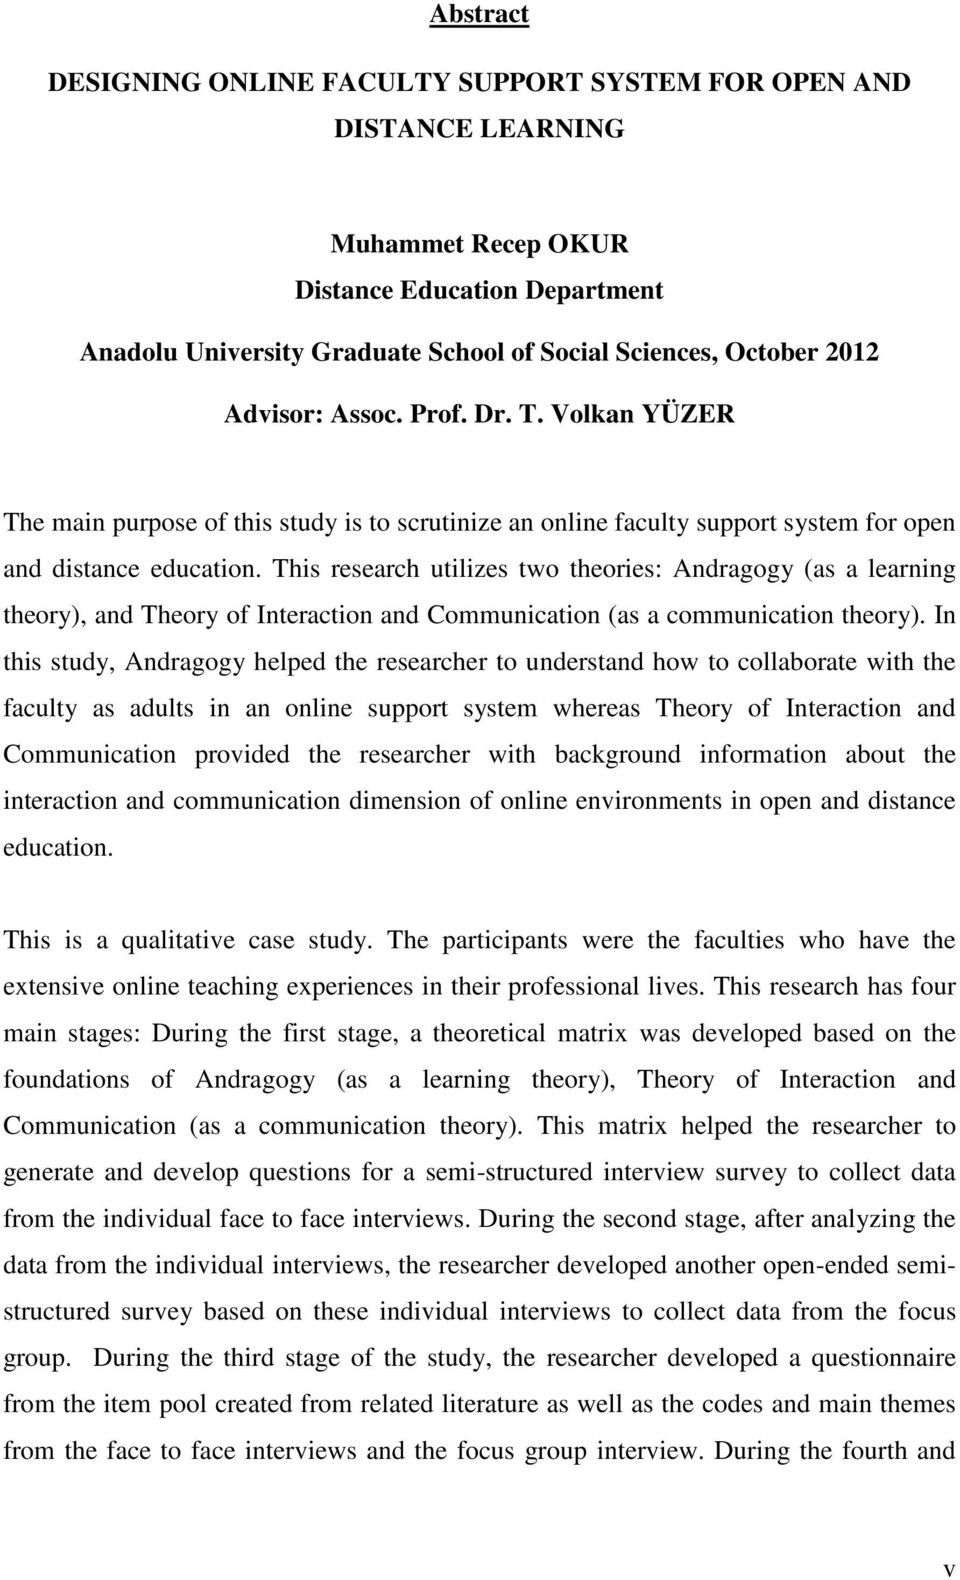 This research utilizes two theories: Andragogy (as a learning theory), and Theory of Interaction and Communication (as a communication theory).